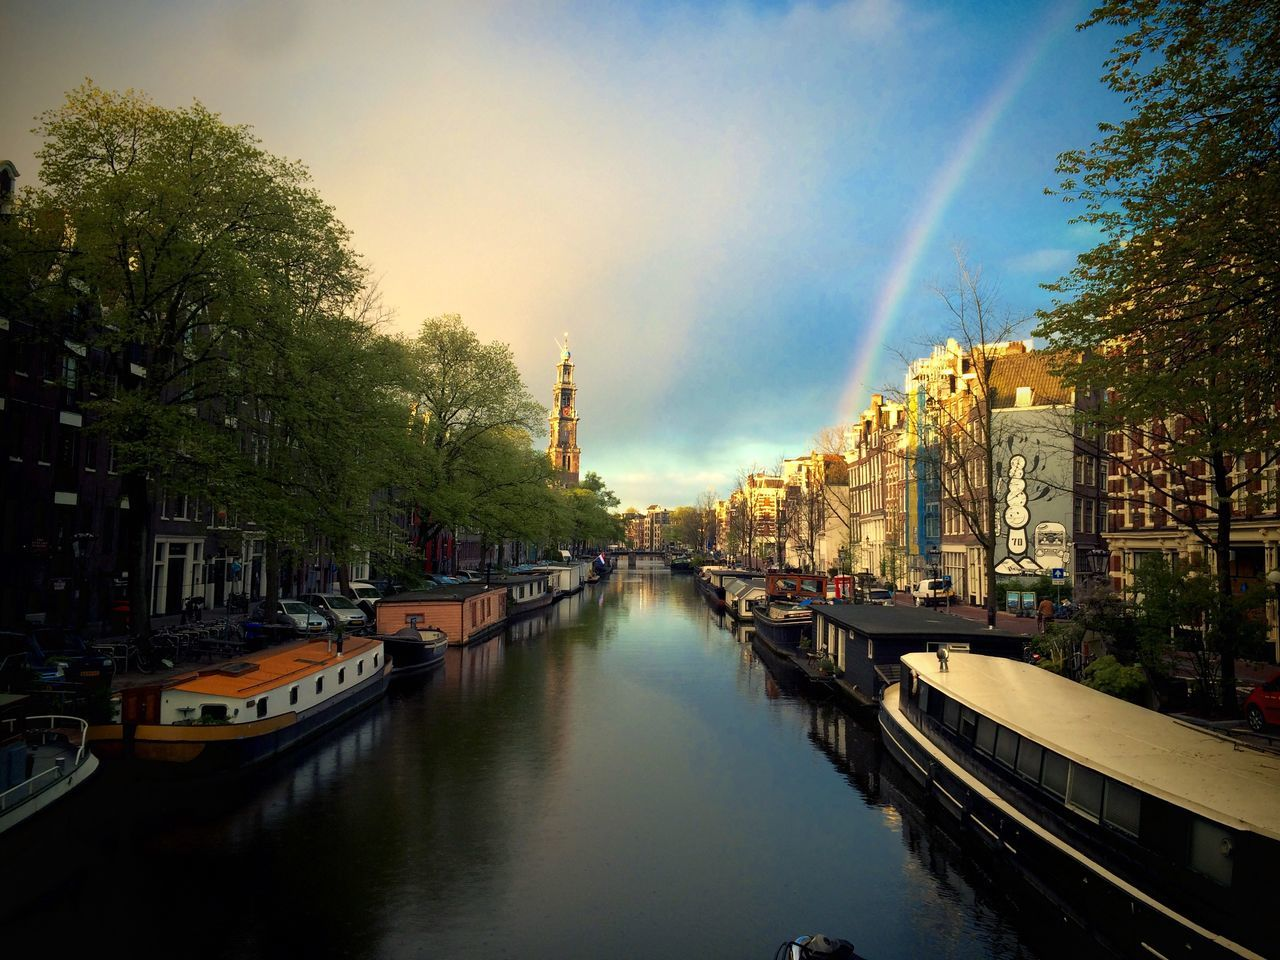 architecture, city, building exterior, built structure, canal, water, transportation, nautical vessel, no people, moored, tree, town, sky, cityscape, outdoors, day